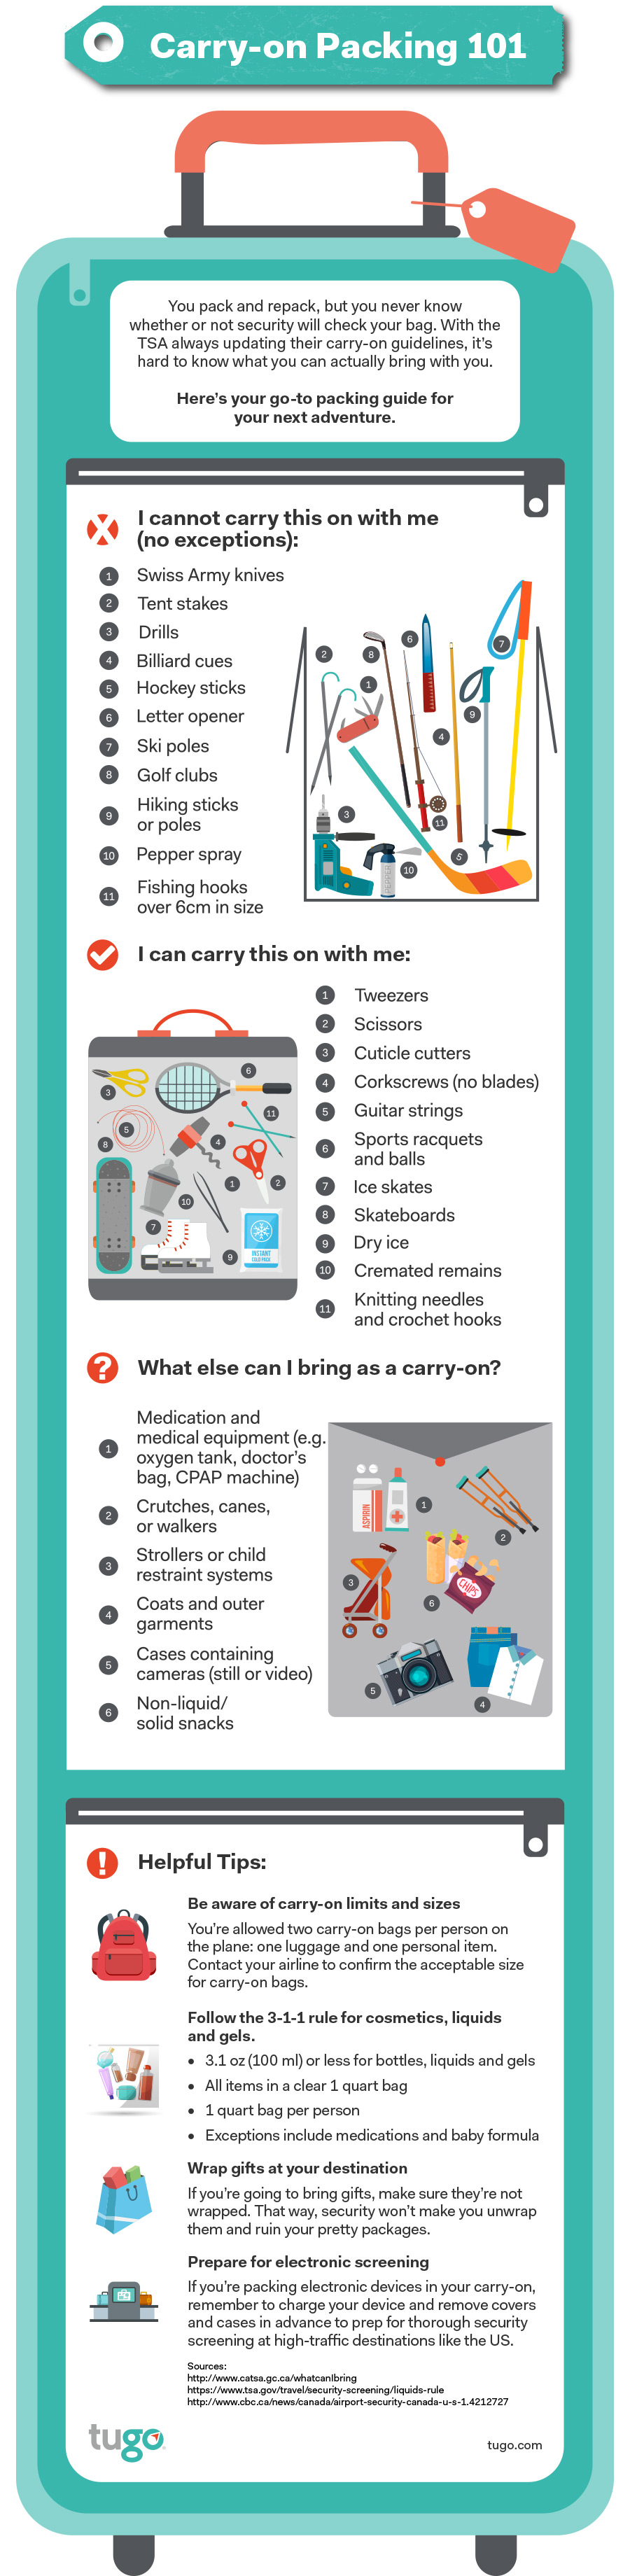 carry on rules restrictions infographic